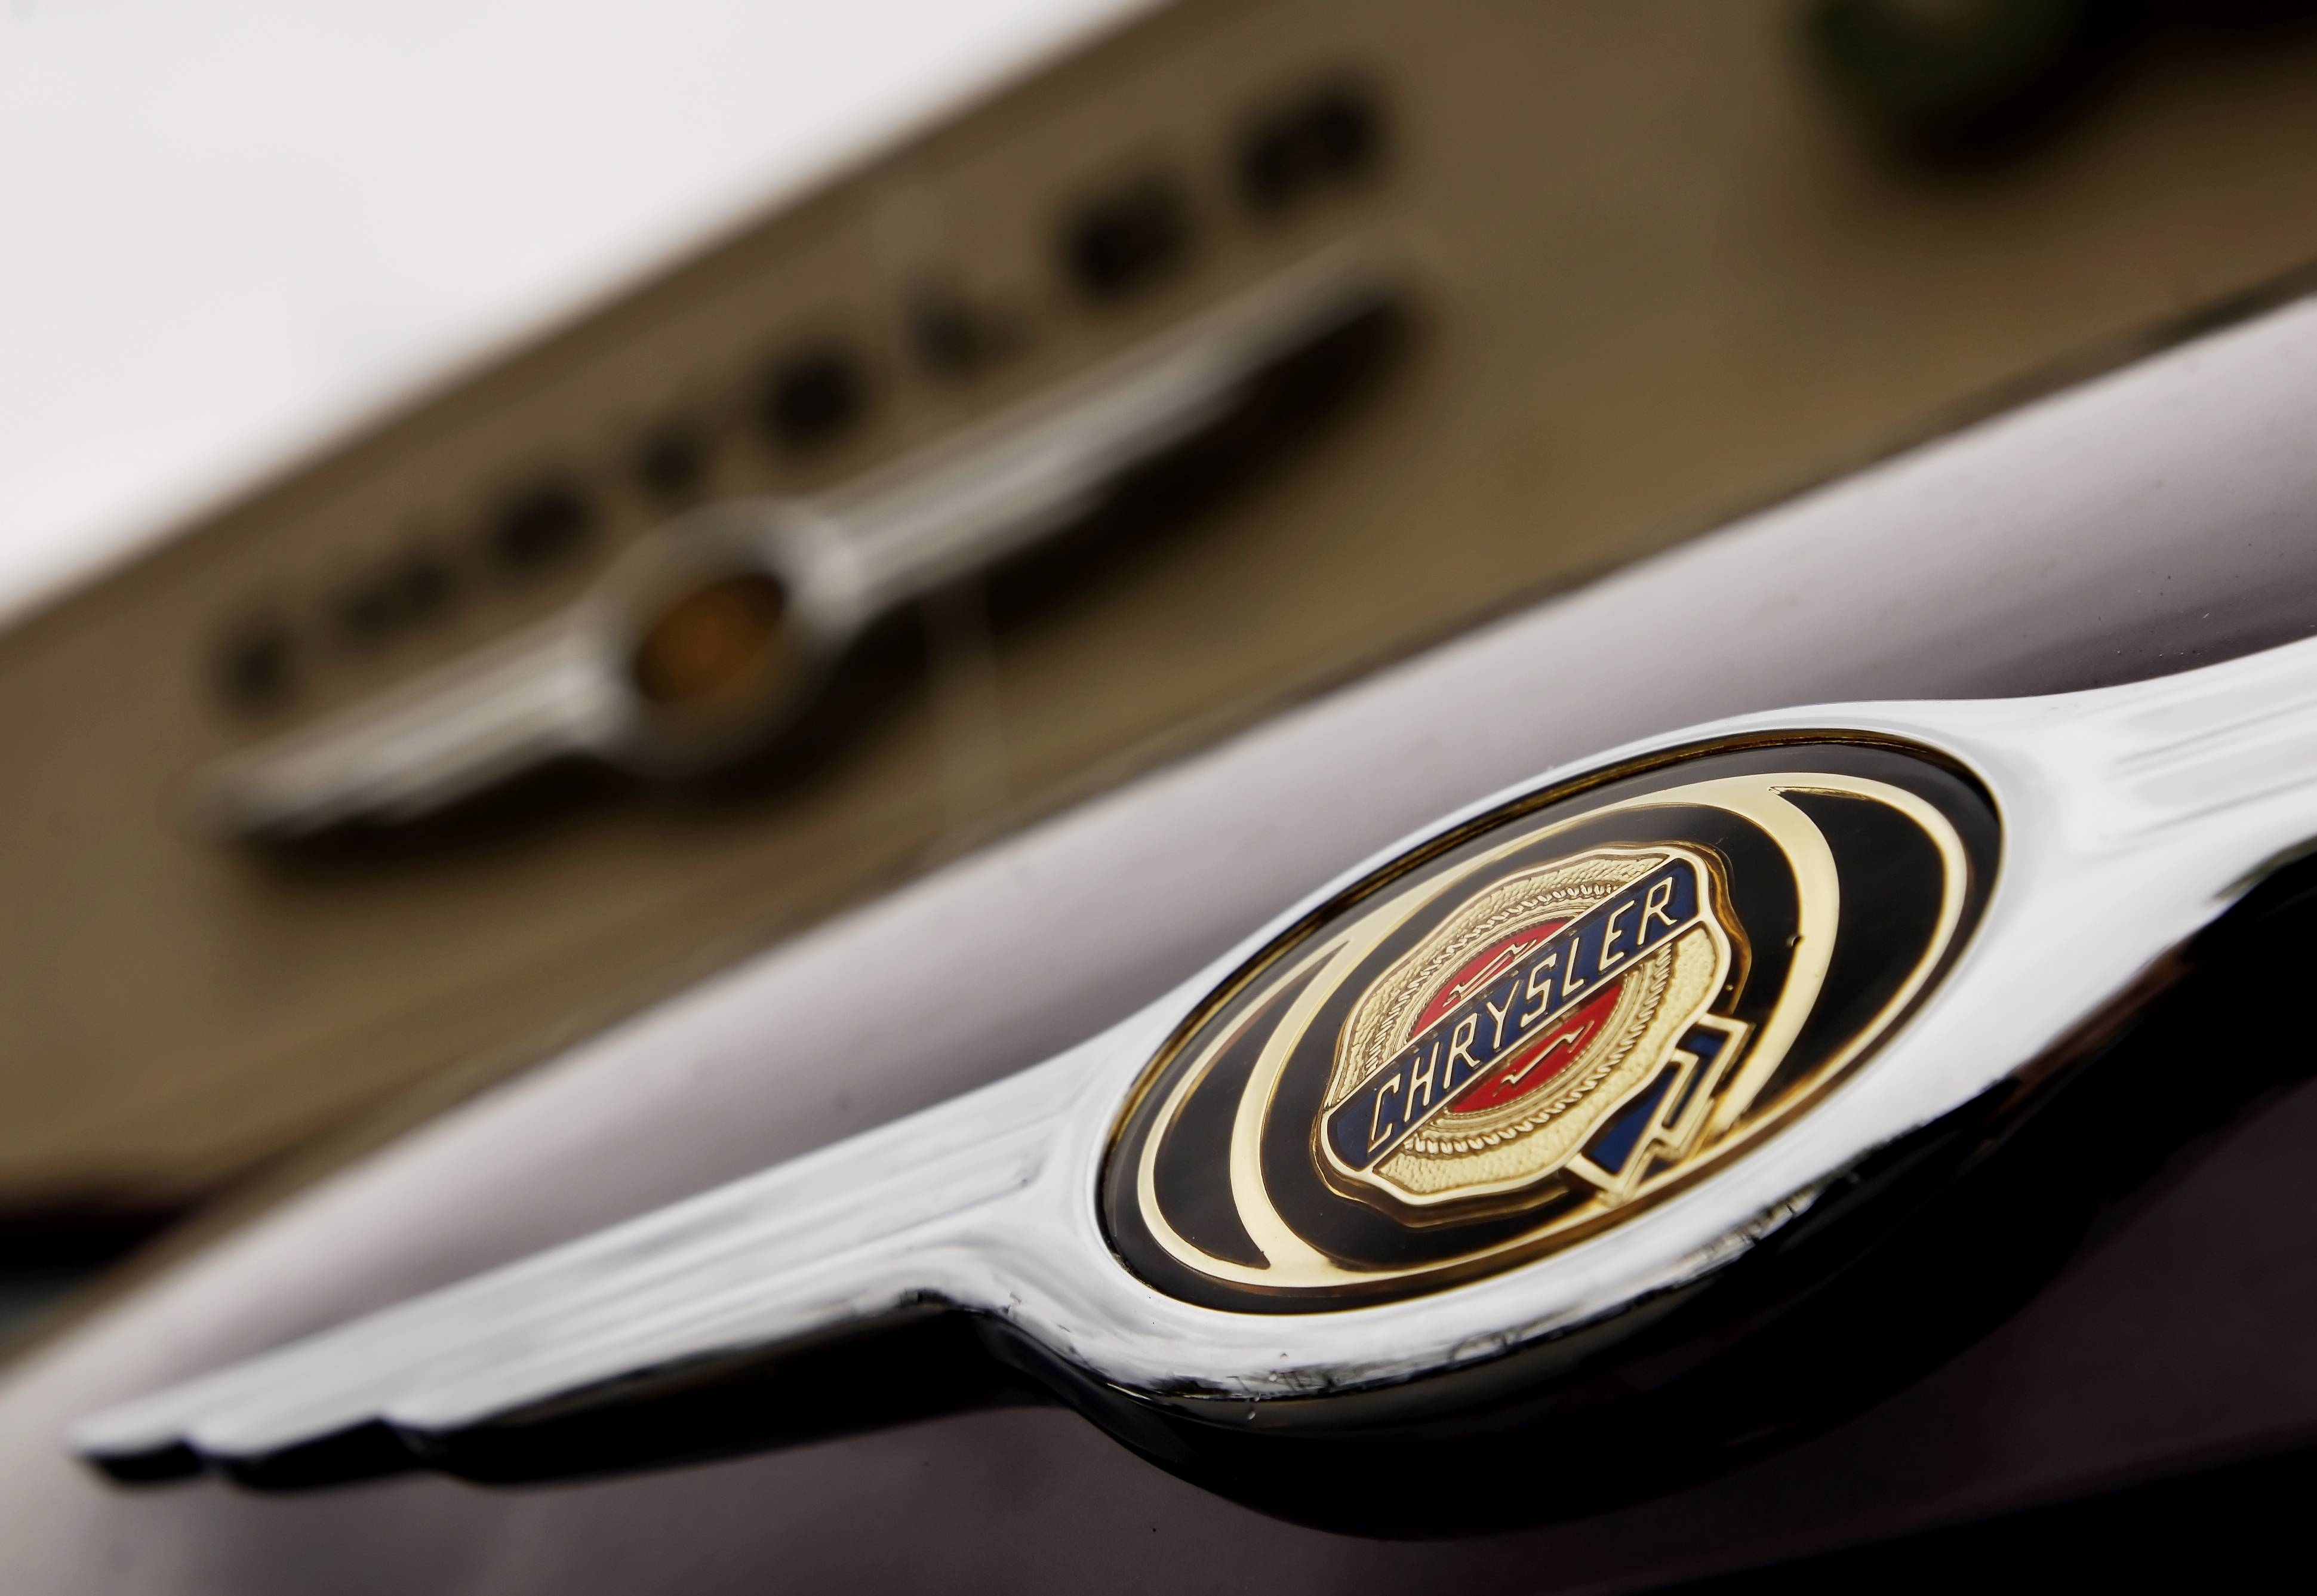 Chrysler says its U.S. sales last month rose 20 percent over a year ago for its best August in 12 years.